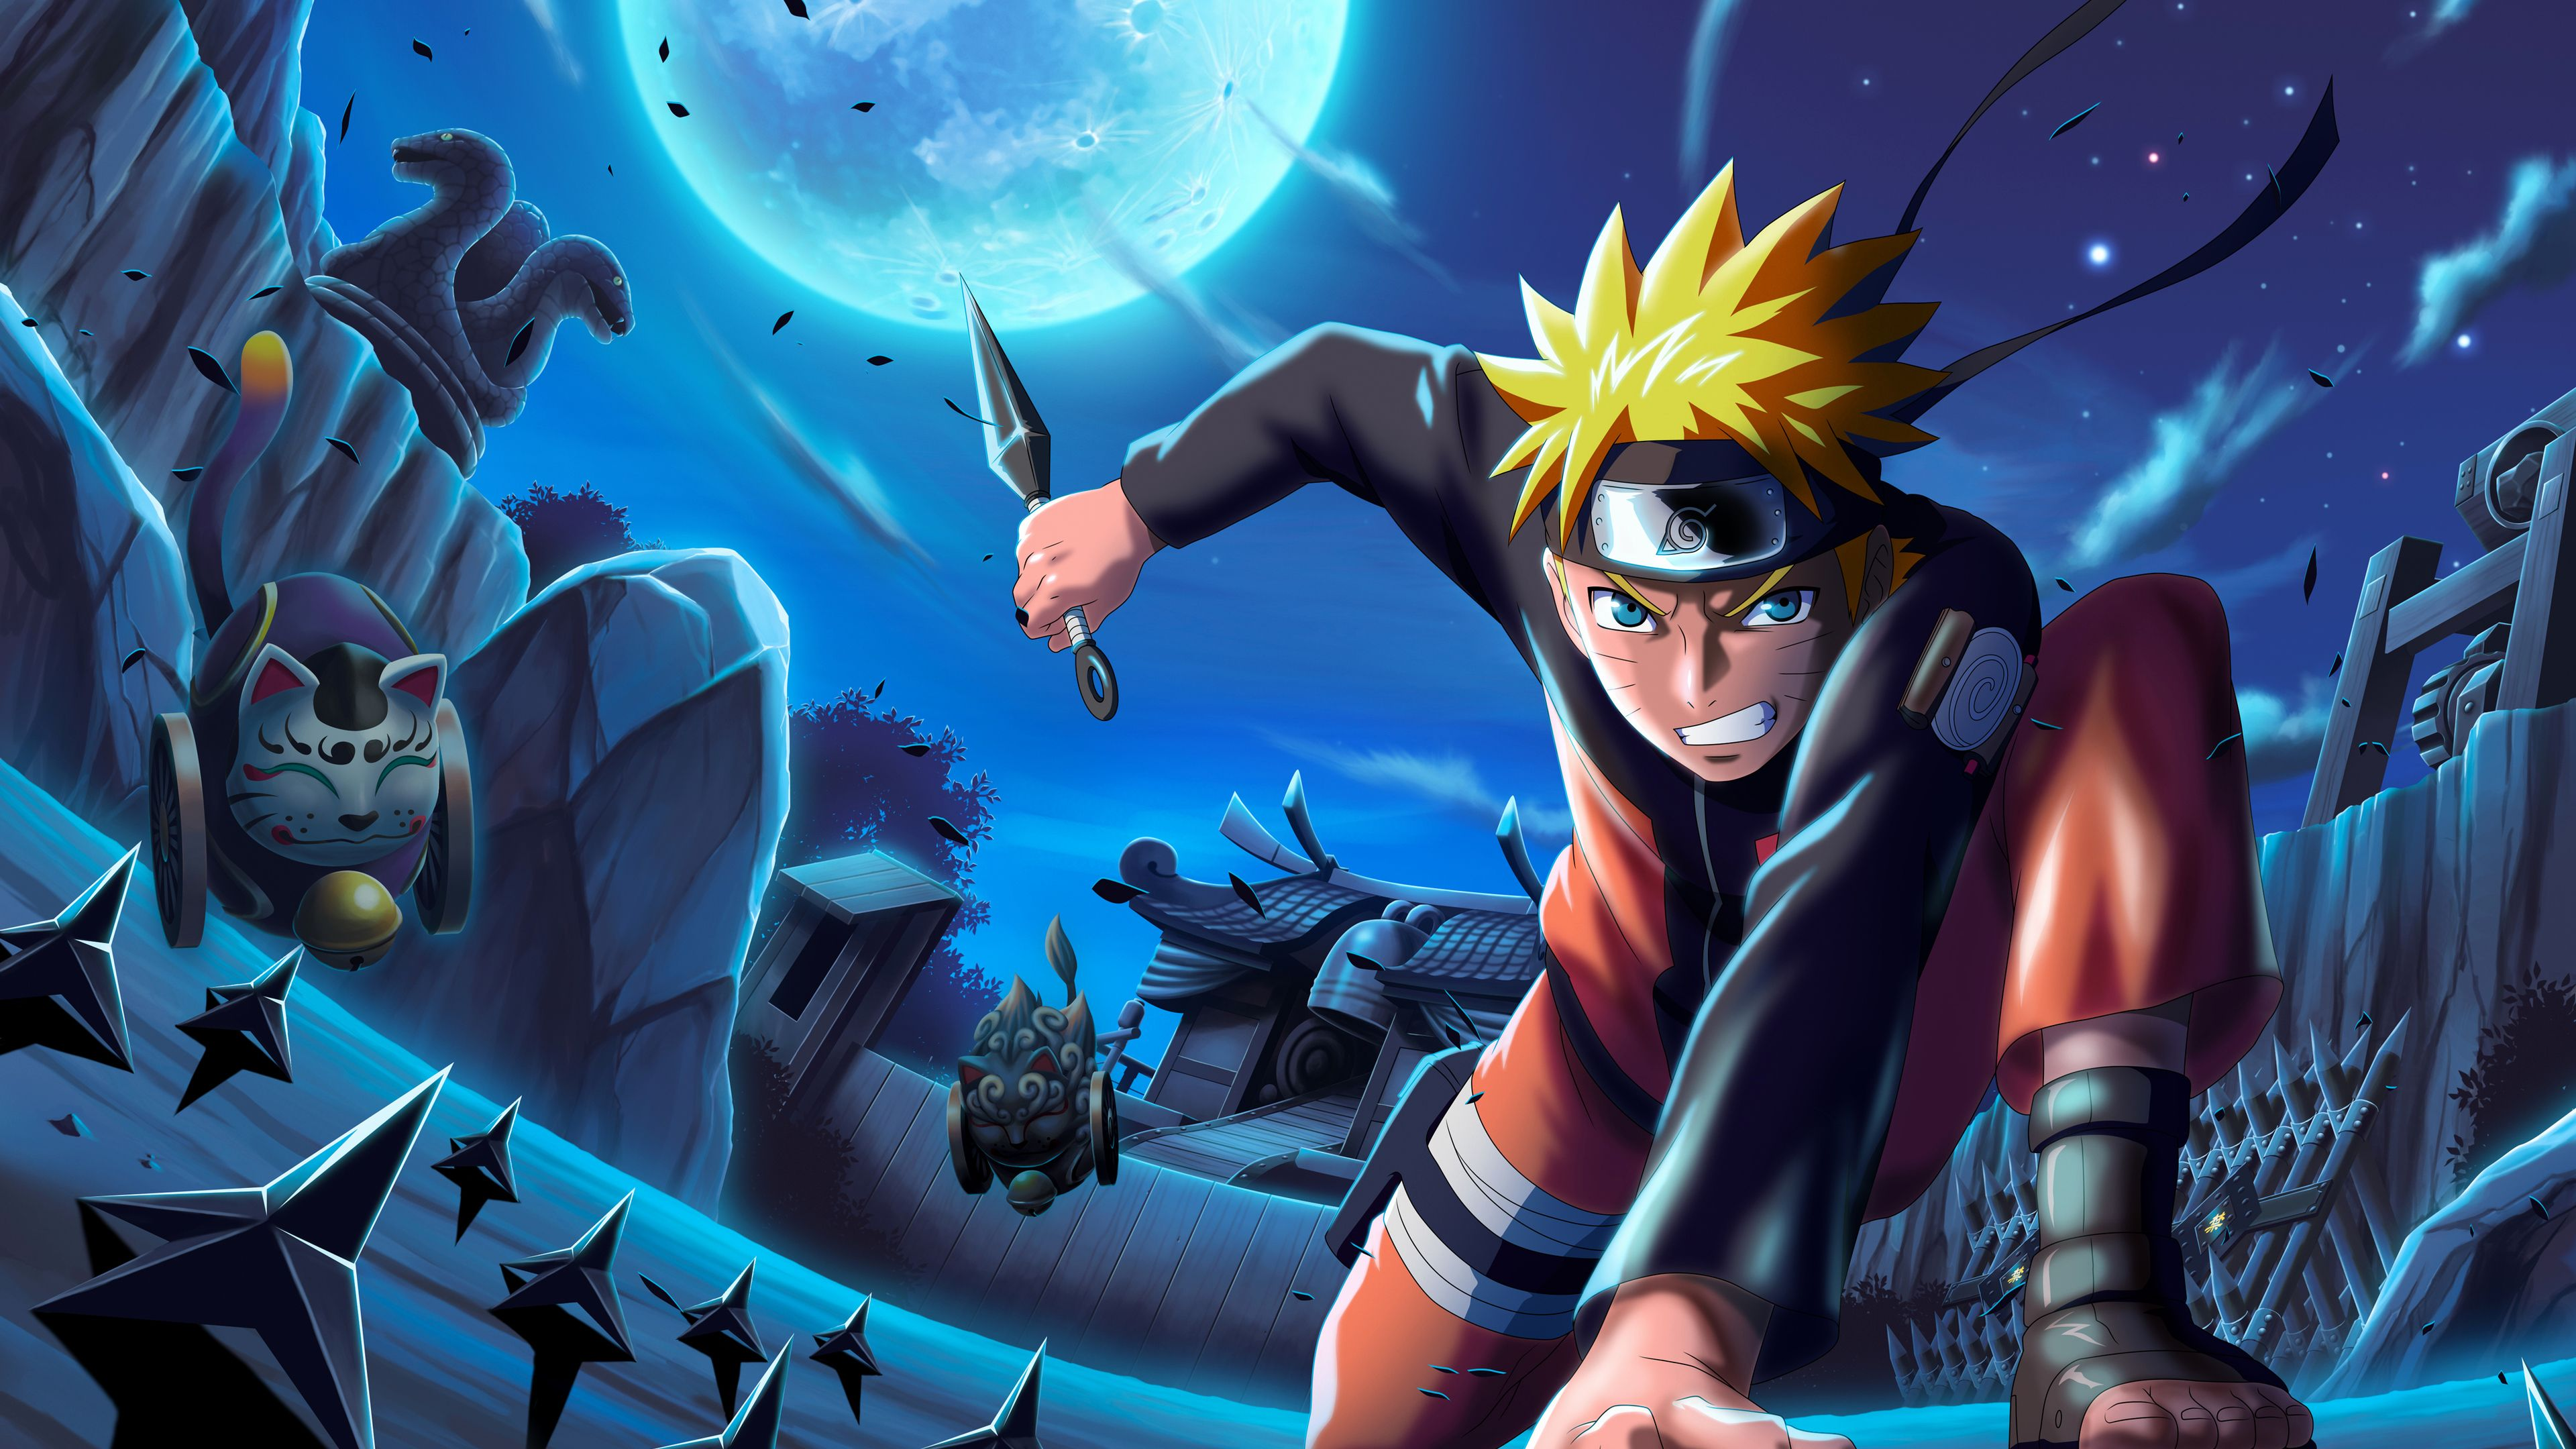 Naruto X Boruto Ninja Voltage Naruto X Boruto Ninja Voltage Wallpapers Naruto Wallpapers Hd Naruto Wallpaper Wallpaper Naruto Shippuden Cool Anime Wallpapers